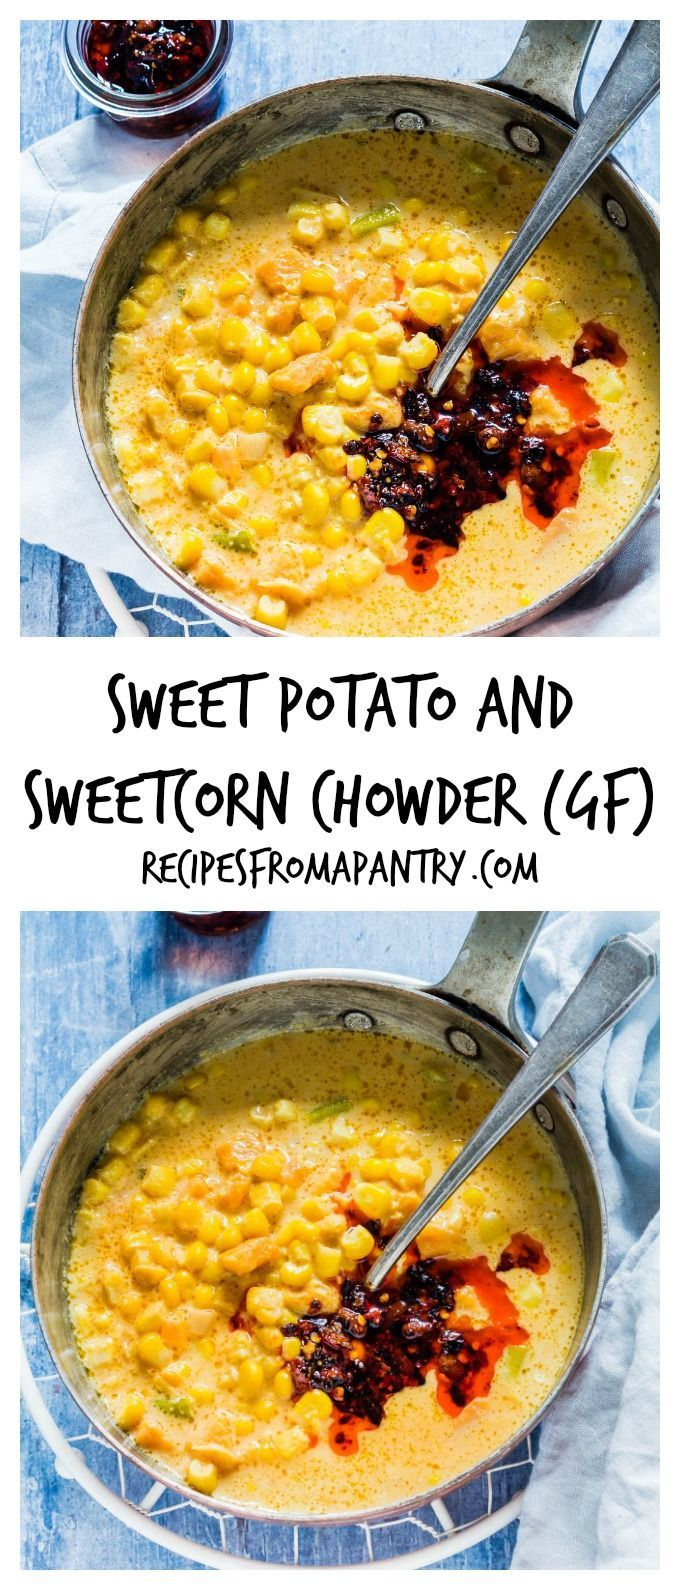 This sweet potato and sweetcorn chowder is a great gluten-free summer soup recipe packed with sweetcorn, sweet potato, milk and smoked paprika. Recipesfromapantry.com